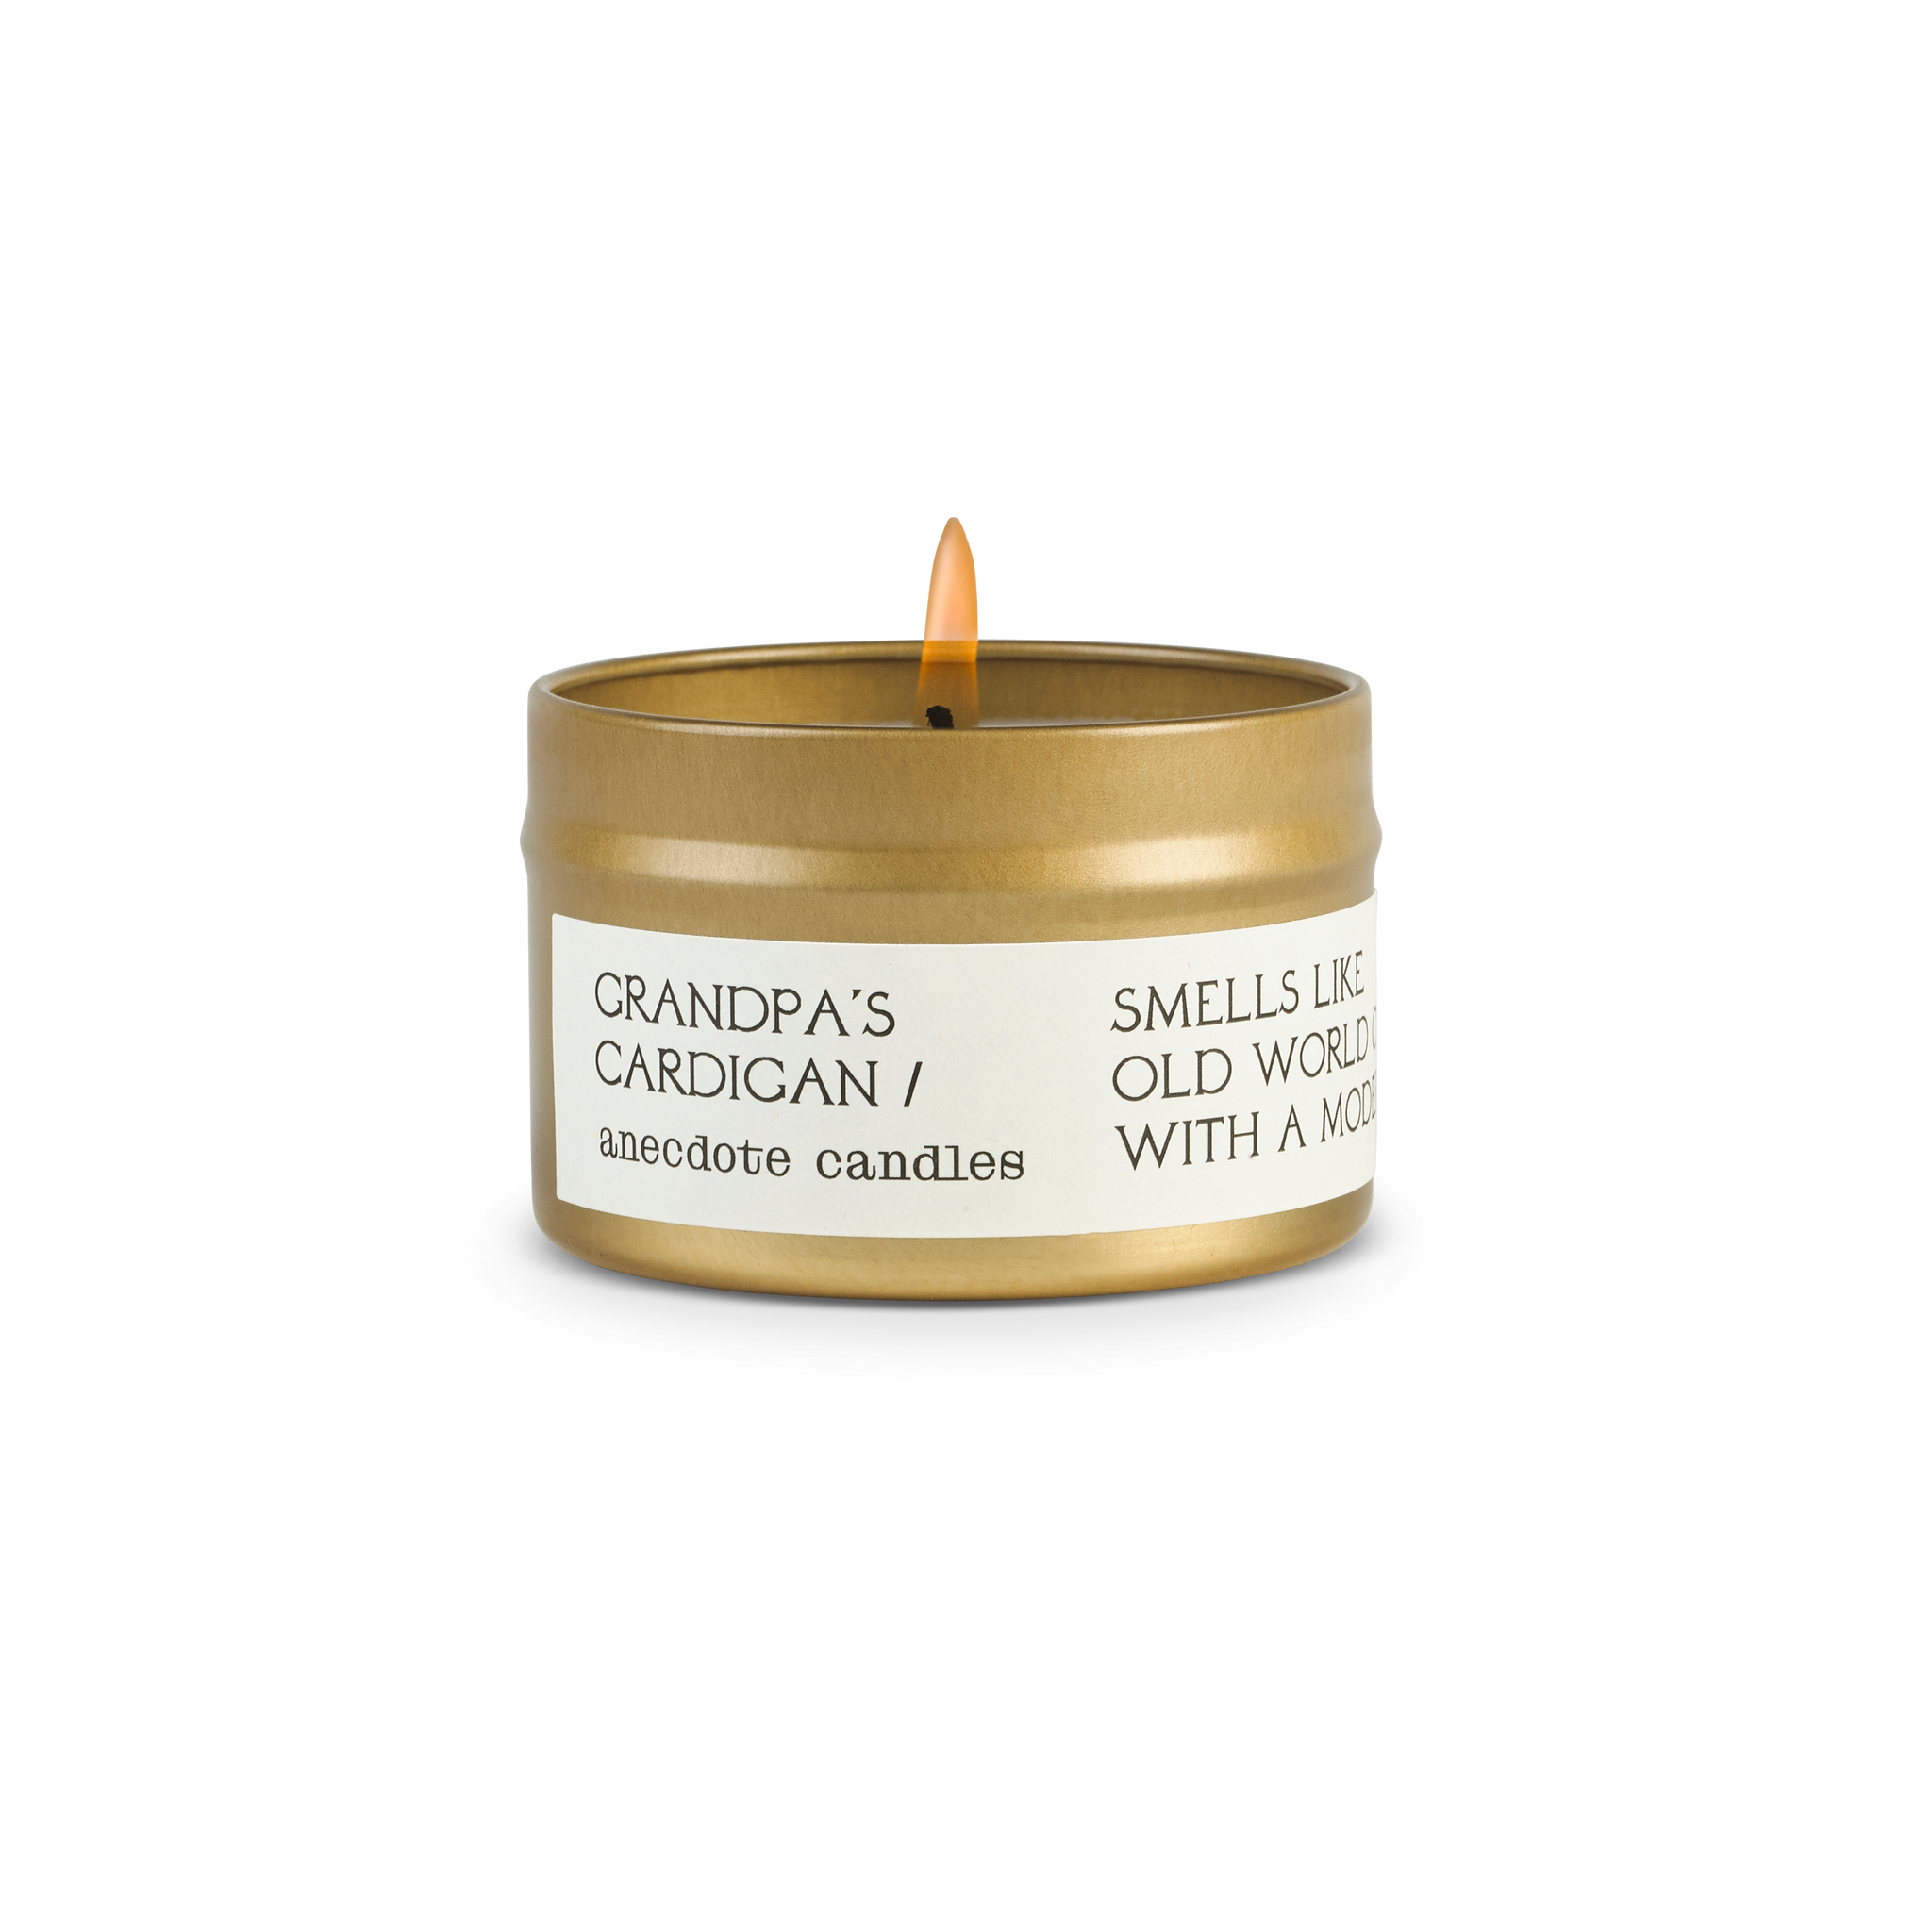 Grandpa's Cardigan - Anecdote Candles